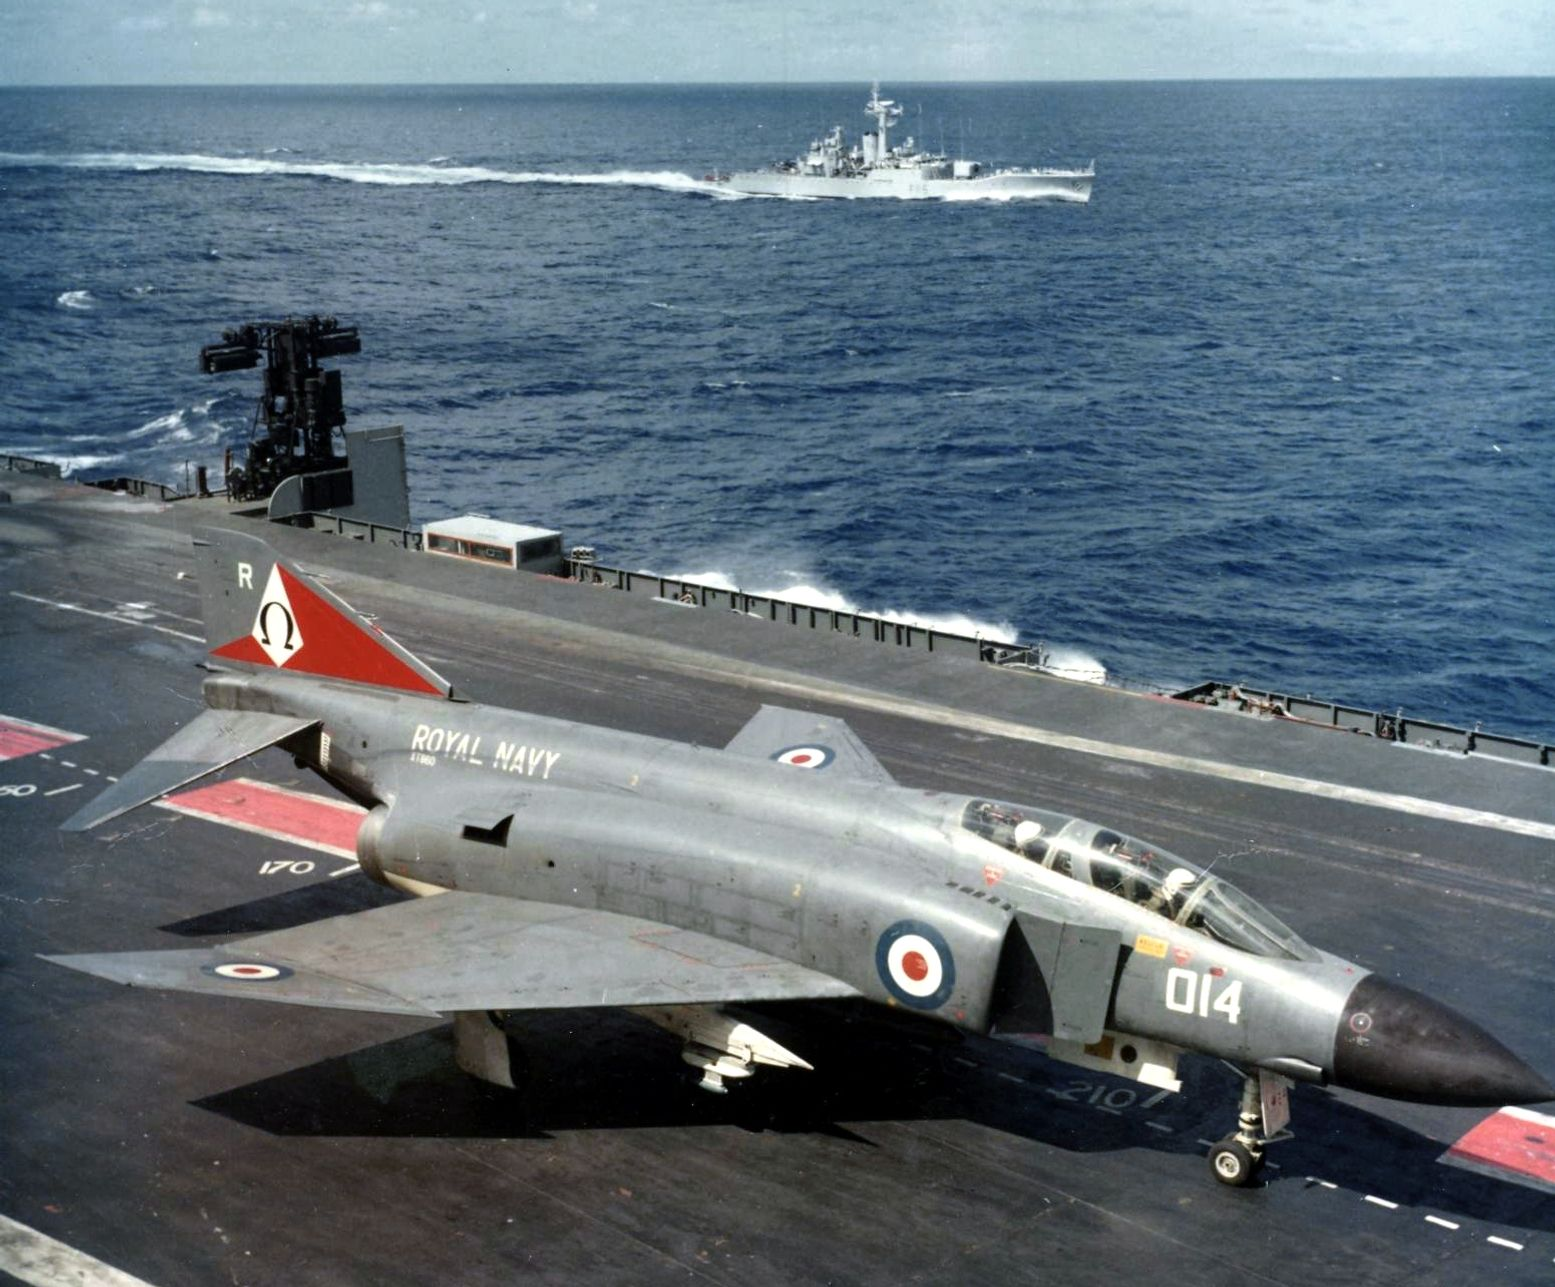 Rare Footage Found of Royal Navy Phantoms Practicing Aboard the